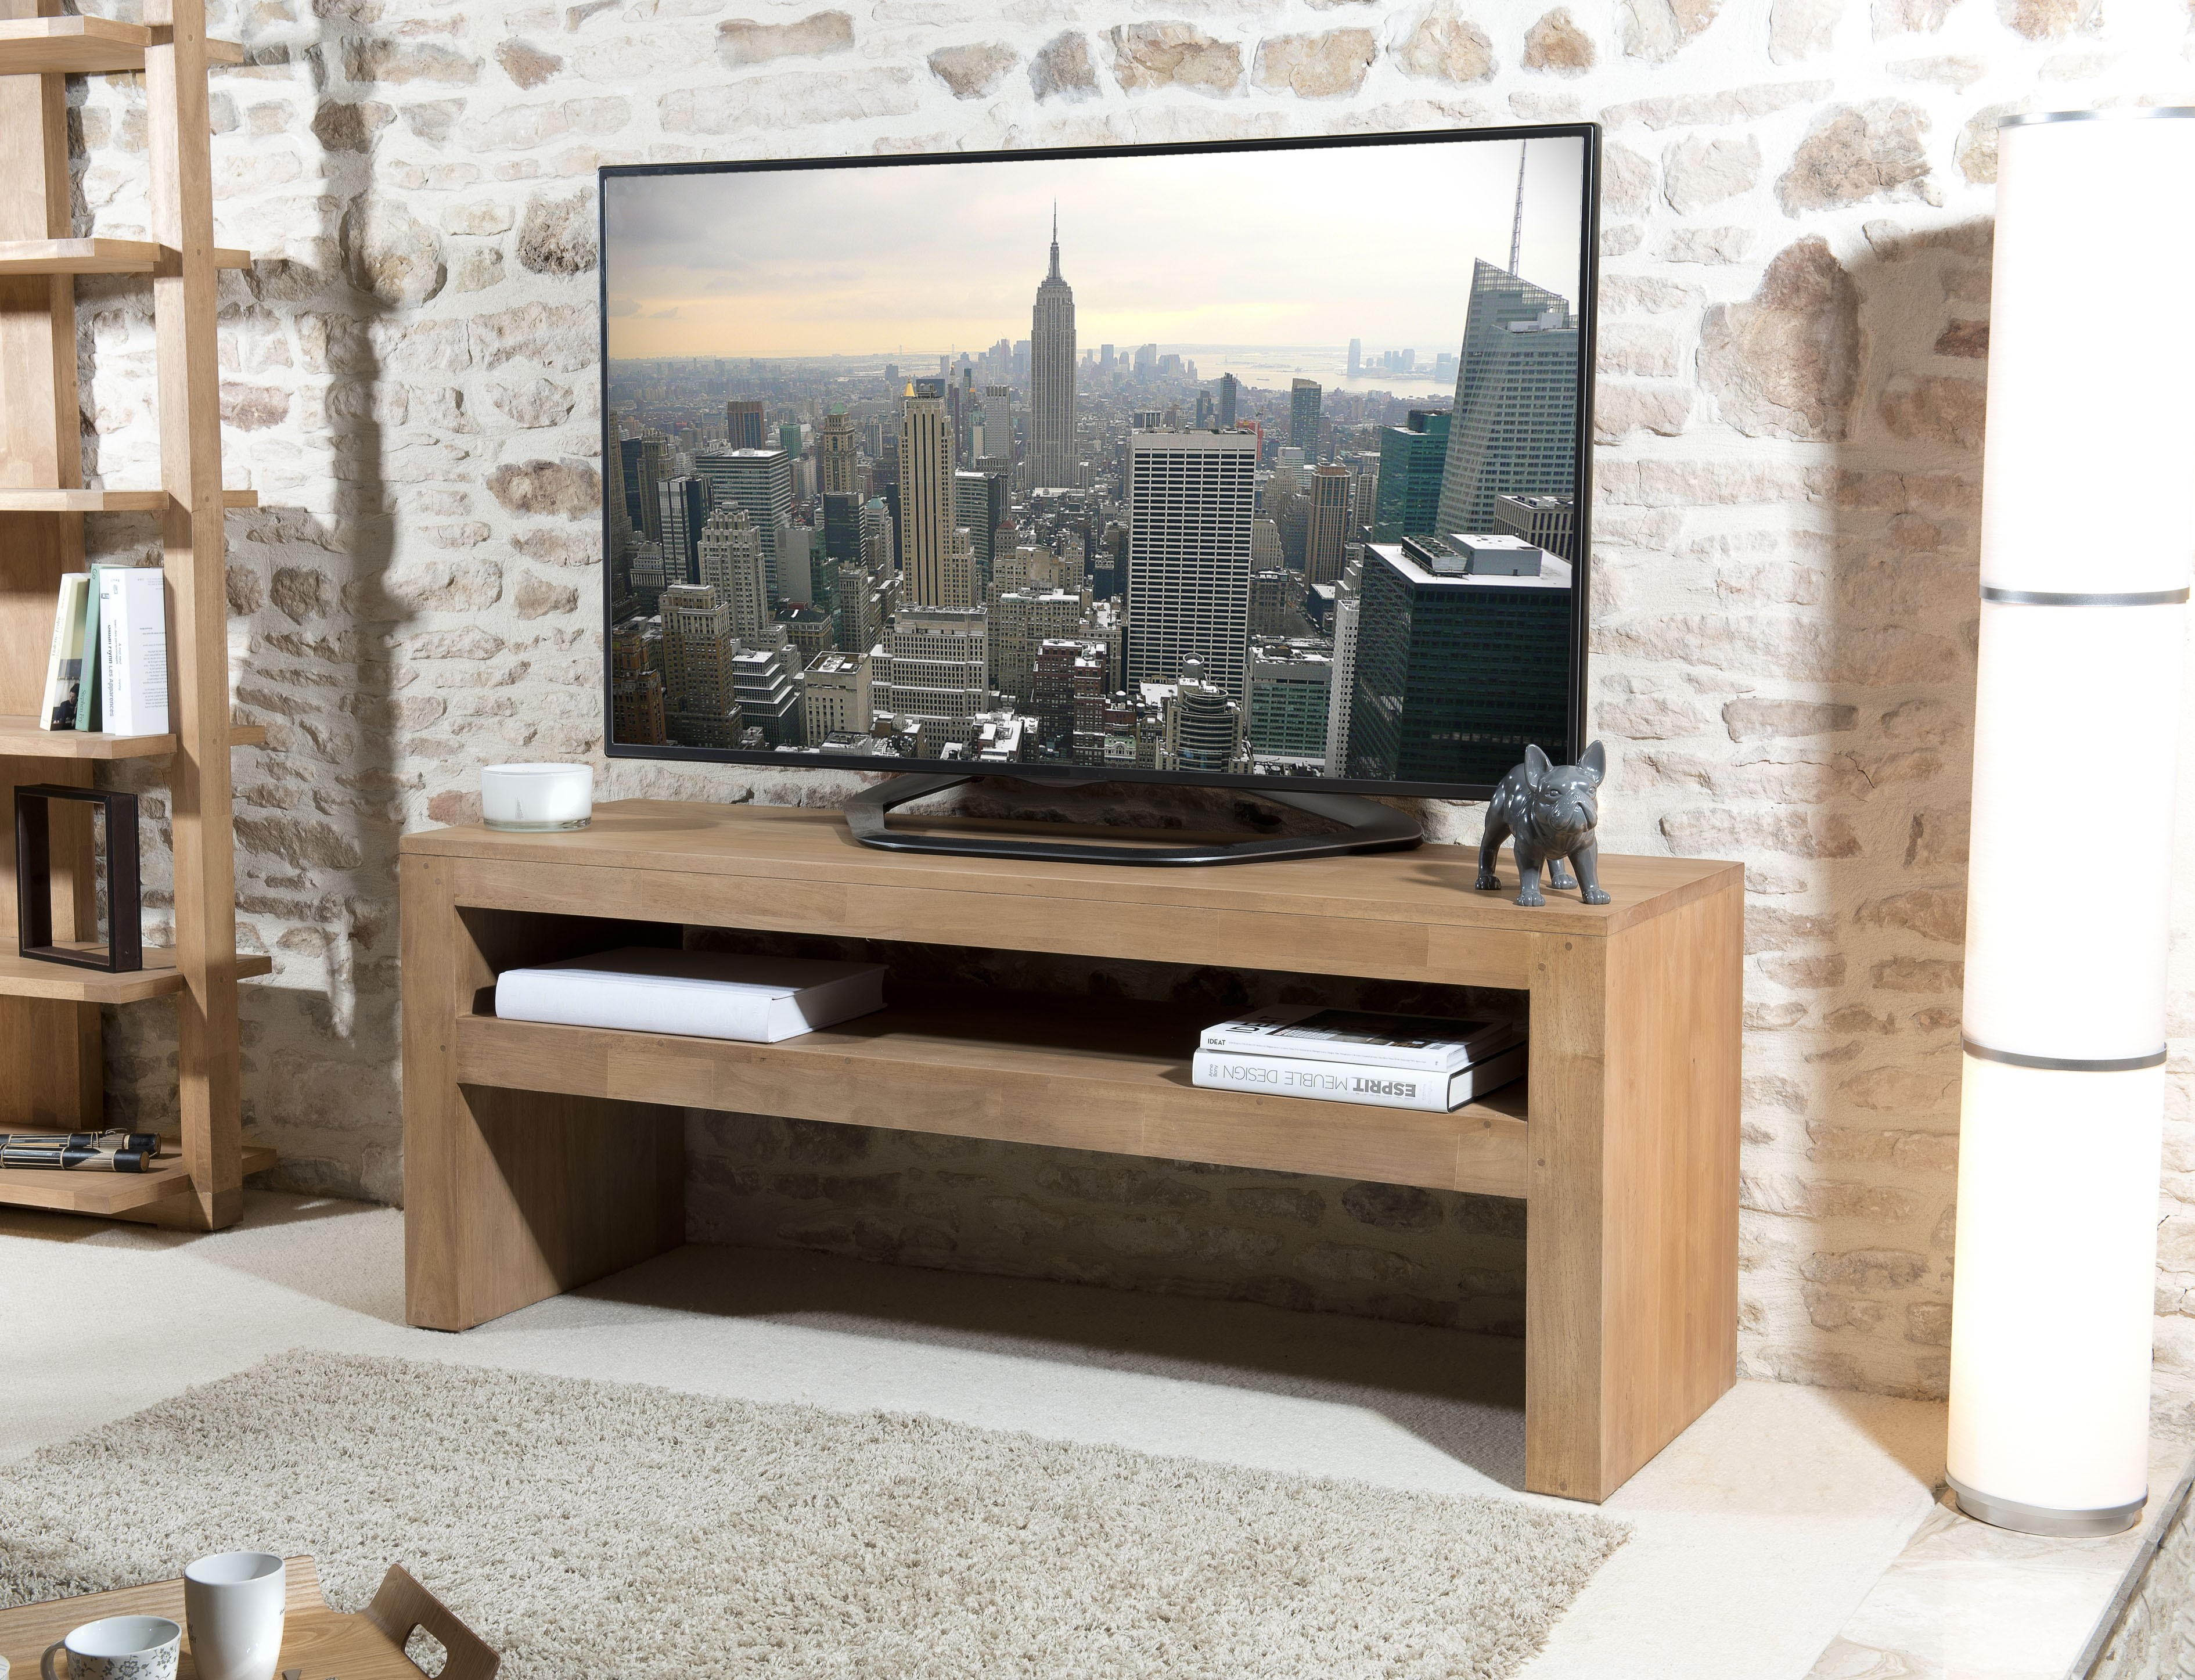 Meuble T L Industriel Multicolore Alto So Inside # Meuble Console Pour Tv